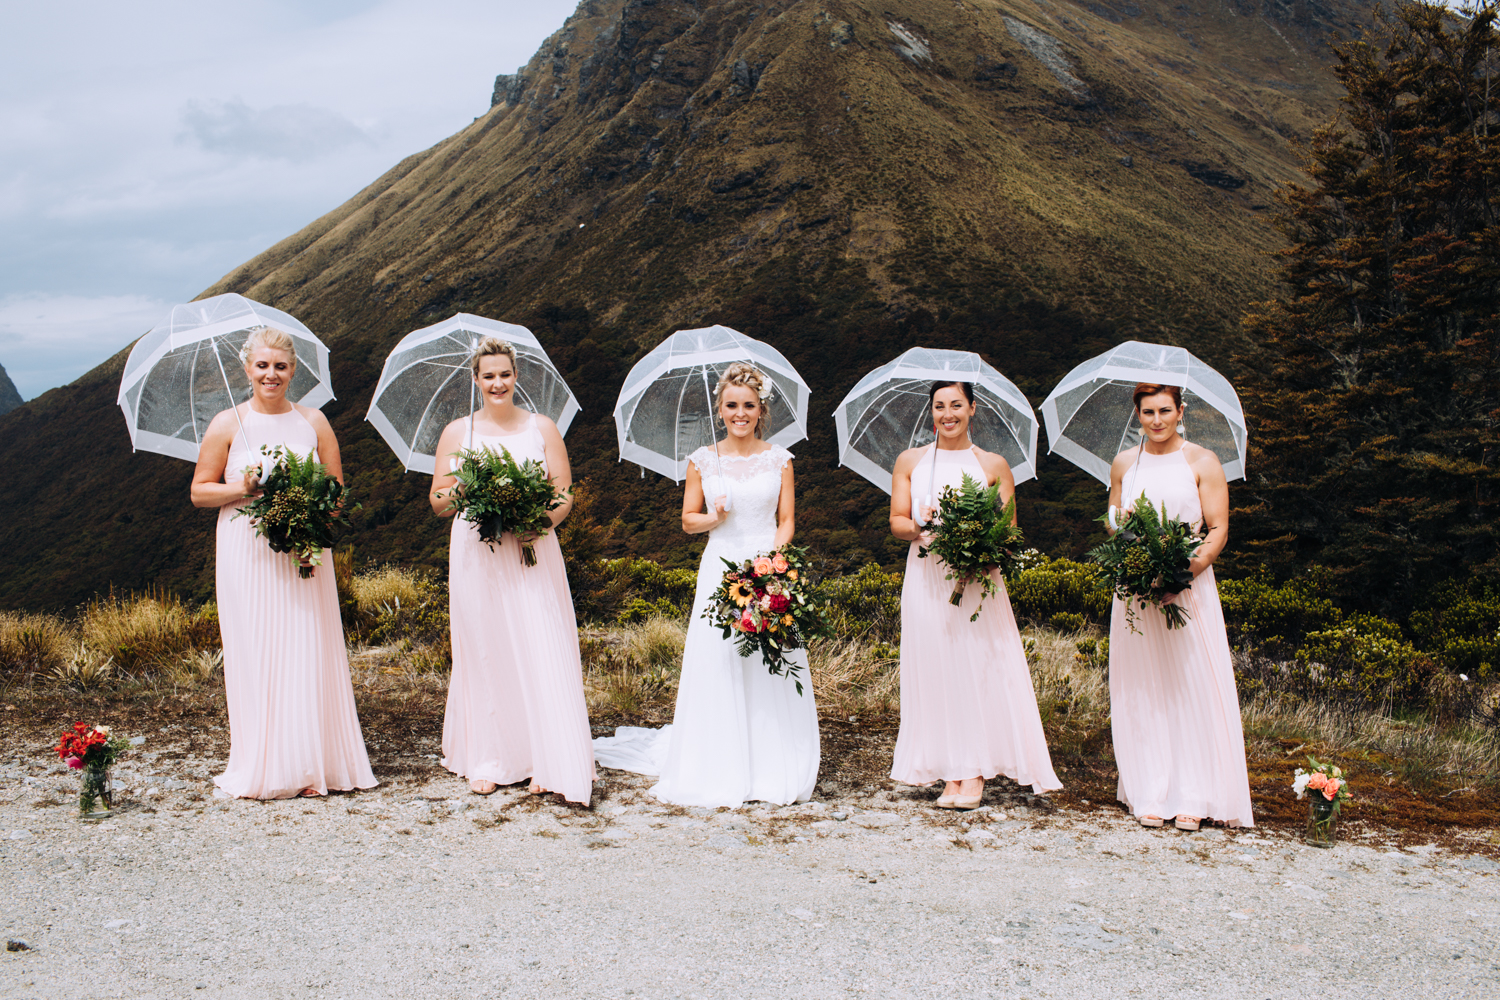 wanaka wedding photographer videographer-416.jpg